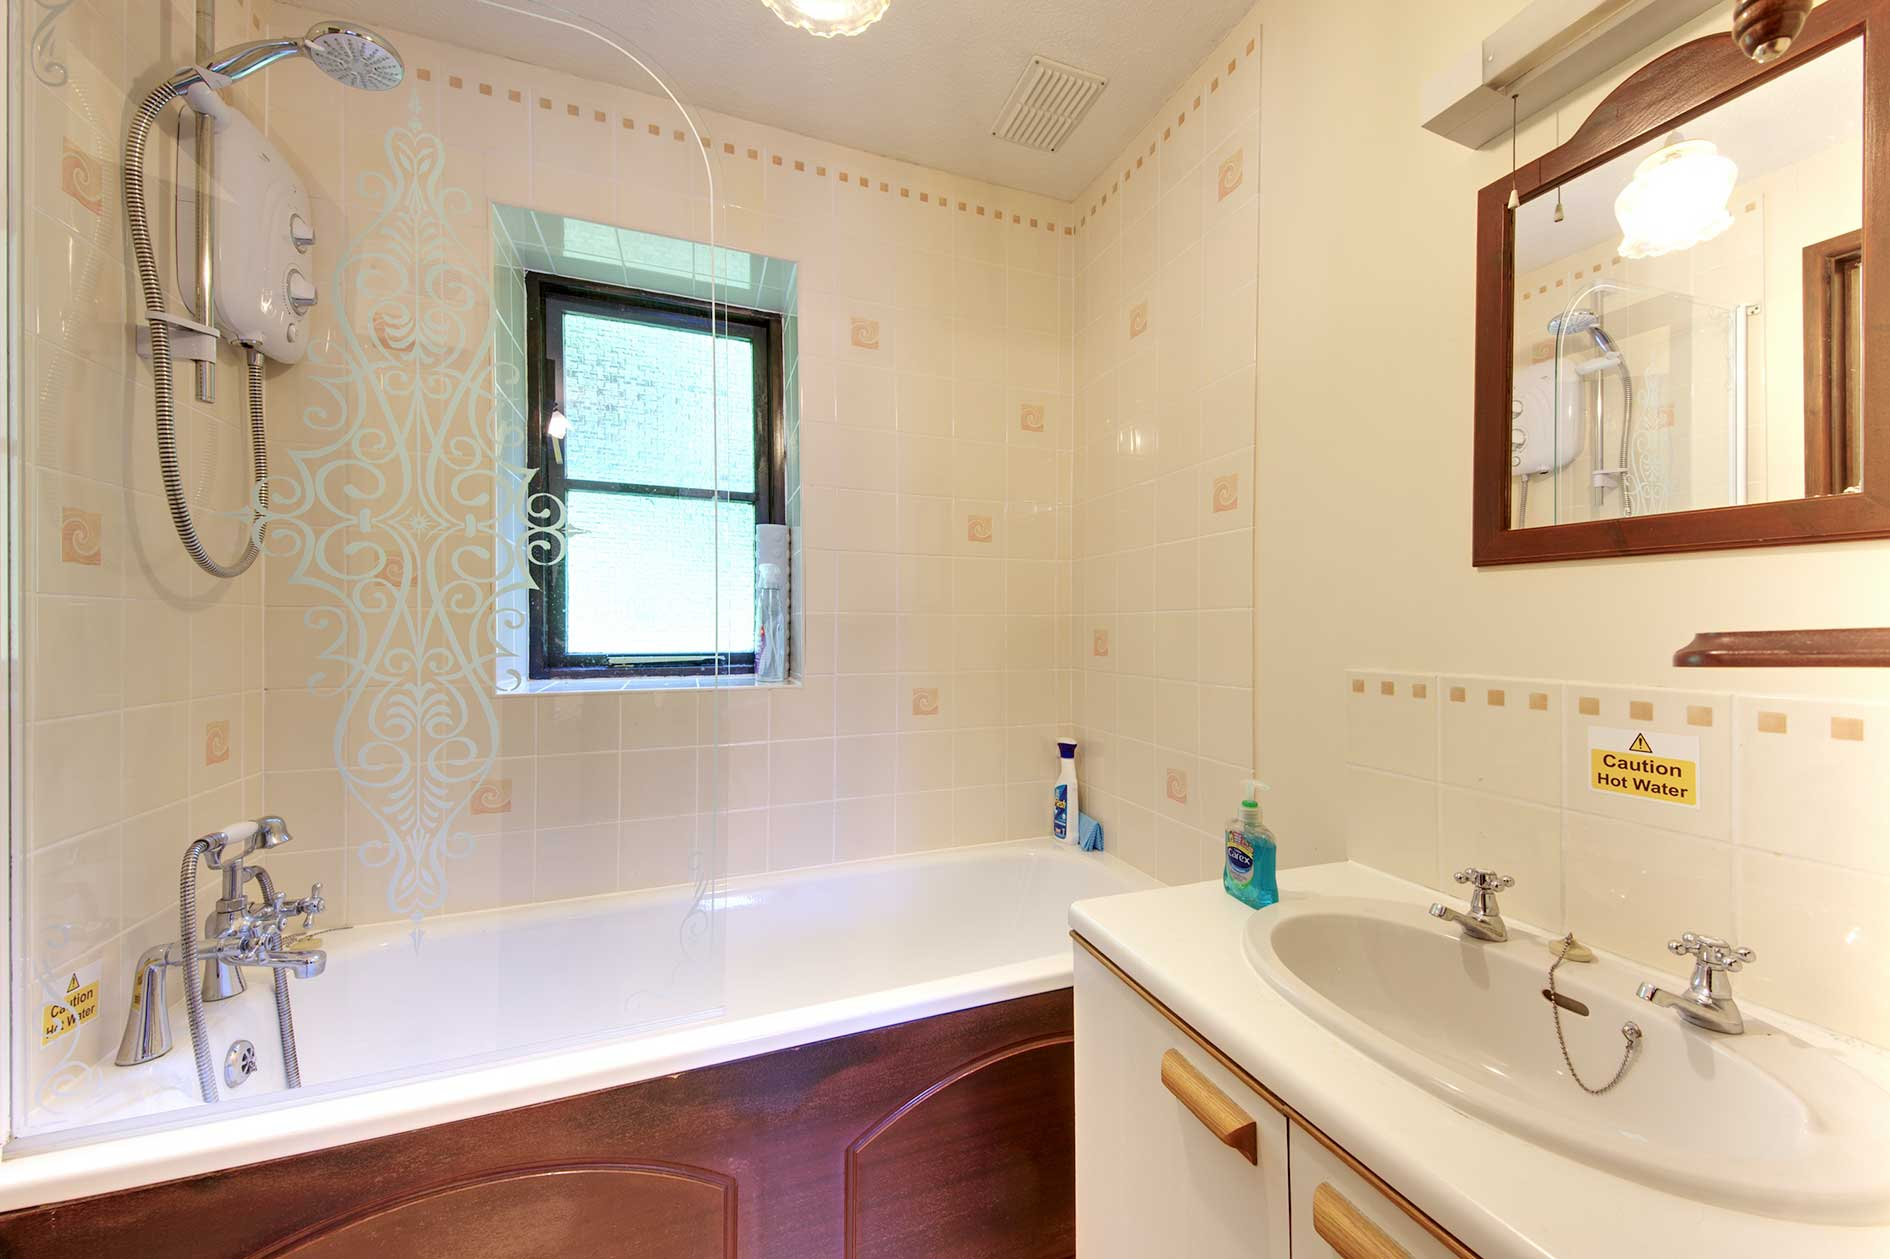 Light Bathroom With Wood Panelled Bath With Shower Over, Mirror And Sink